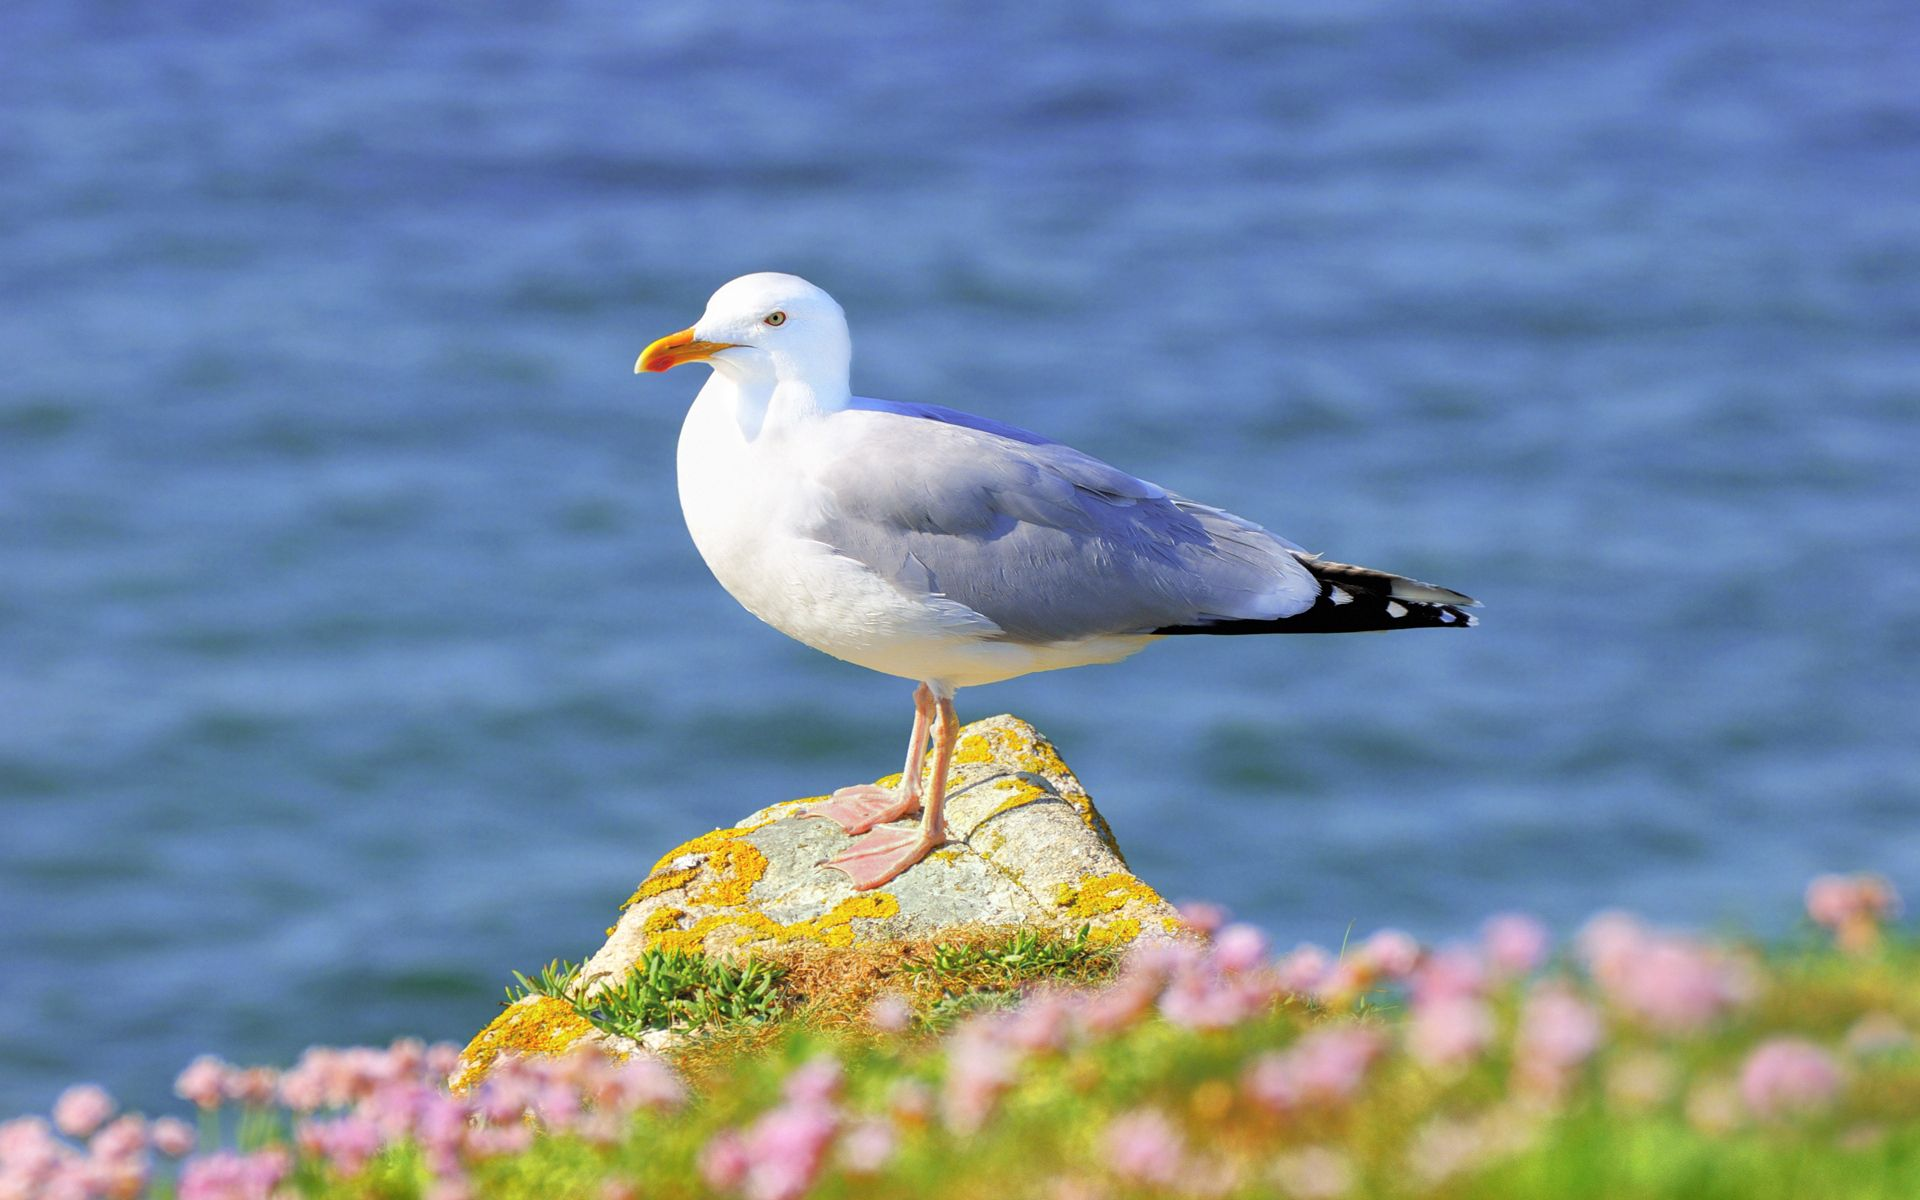 55304 download wallpaper Animals, Gull, Seagull, Grass, Bird, Flowers screensavers and pictures for free